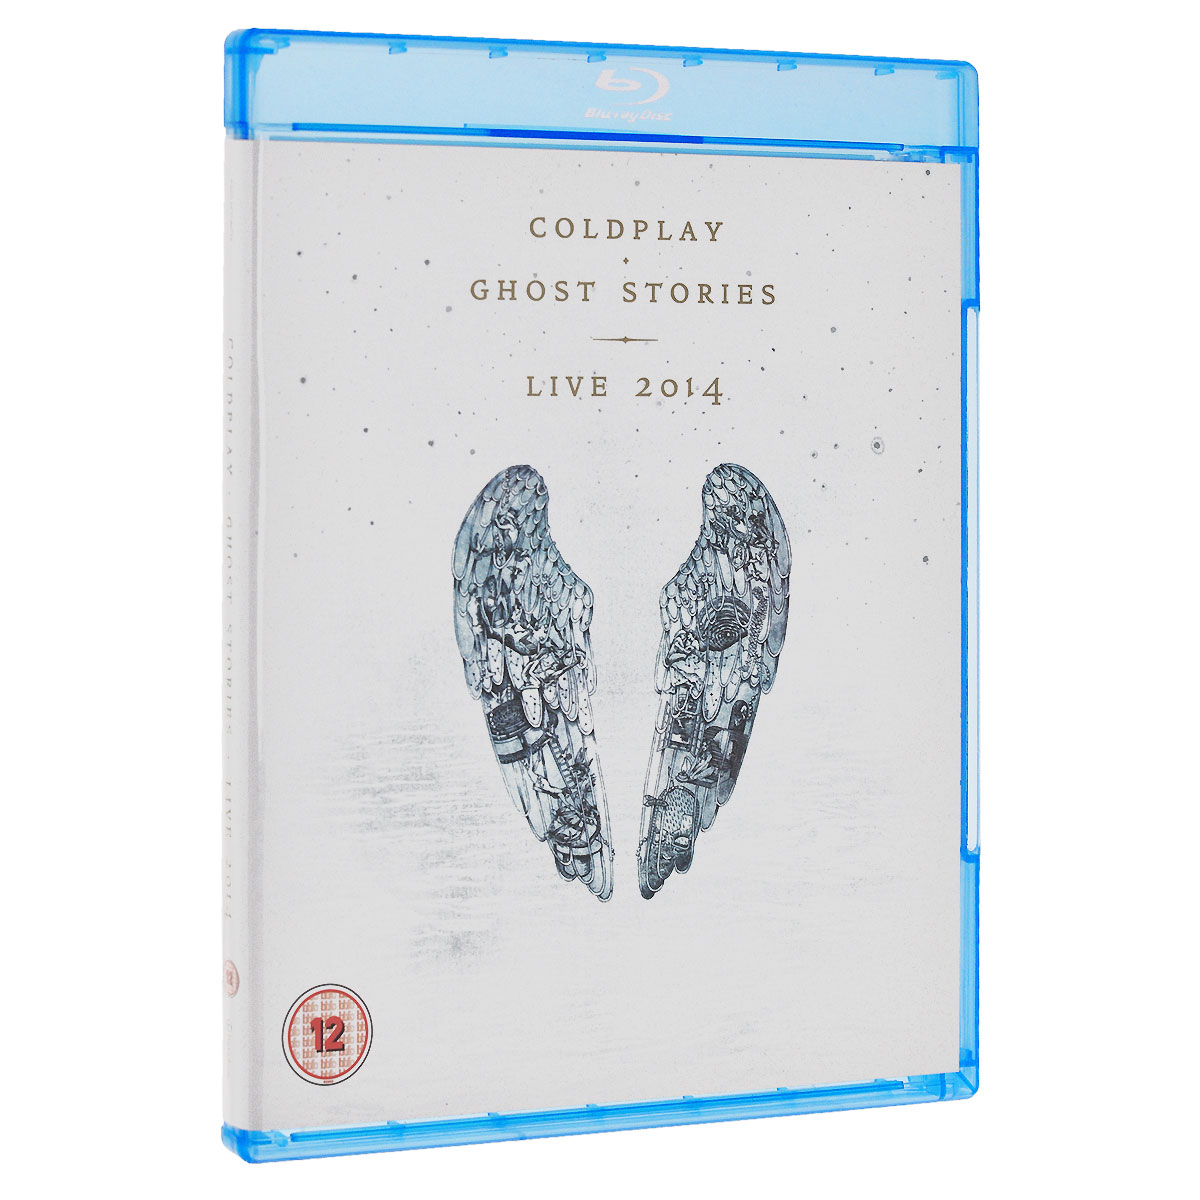 Coldplay. Ghost Stories. Live 2014 (Blu-ray + CD)